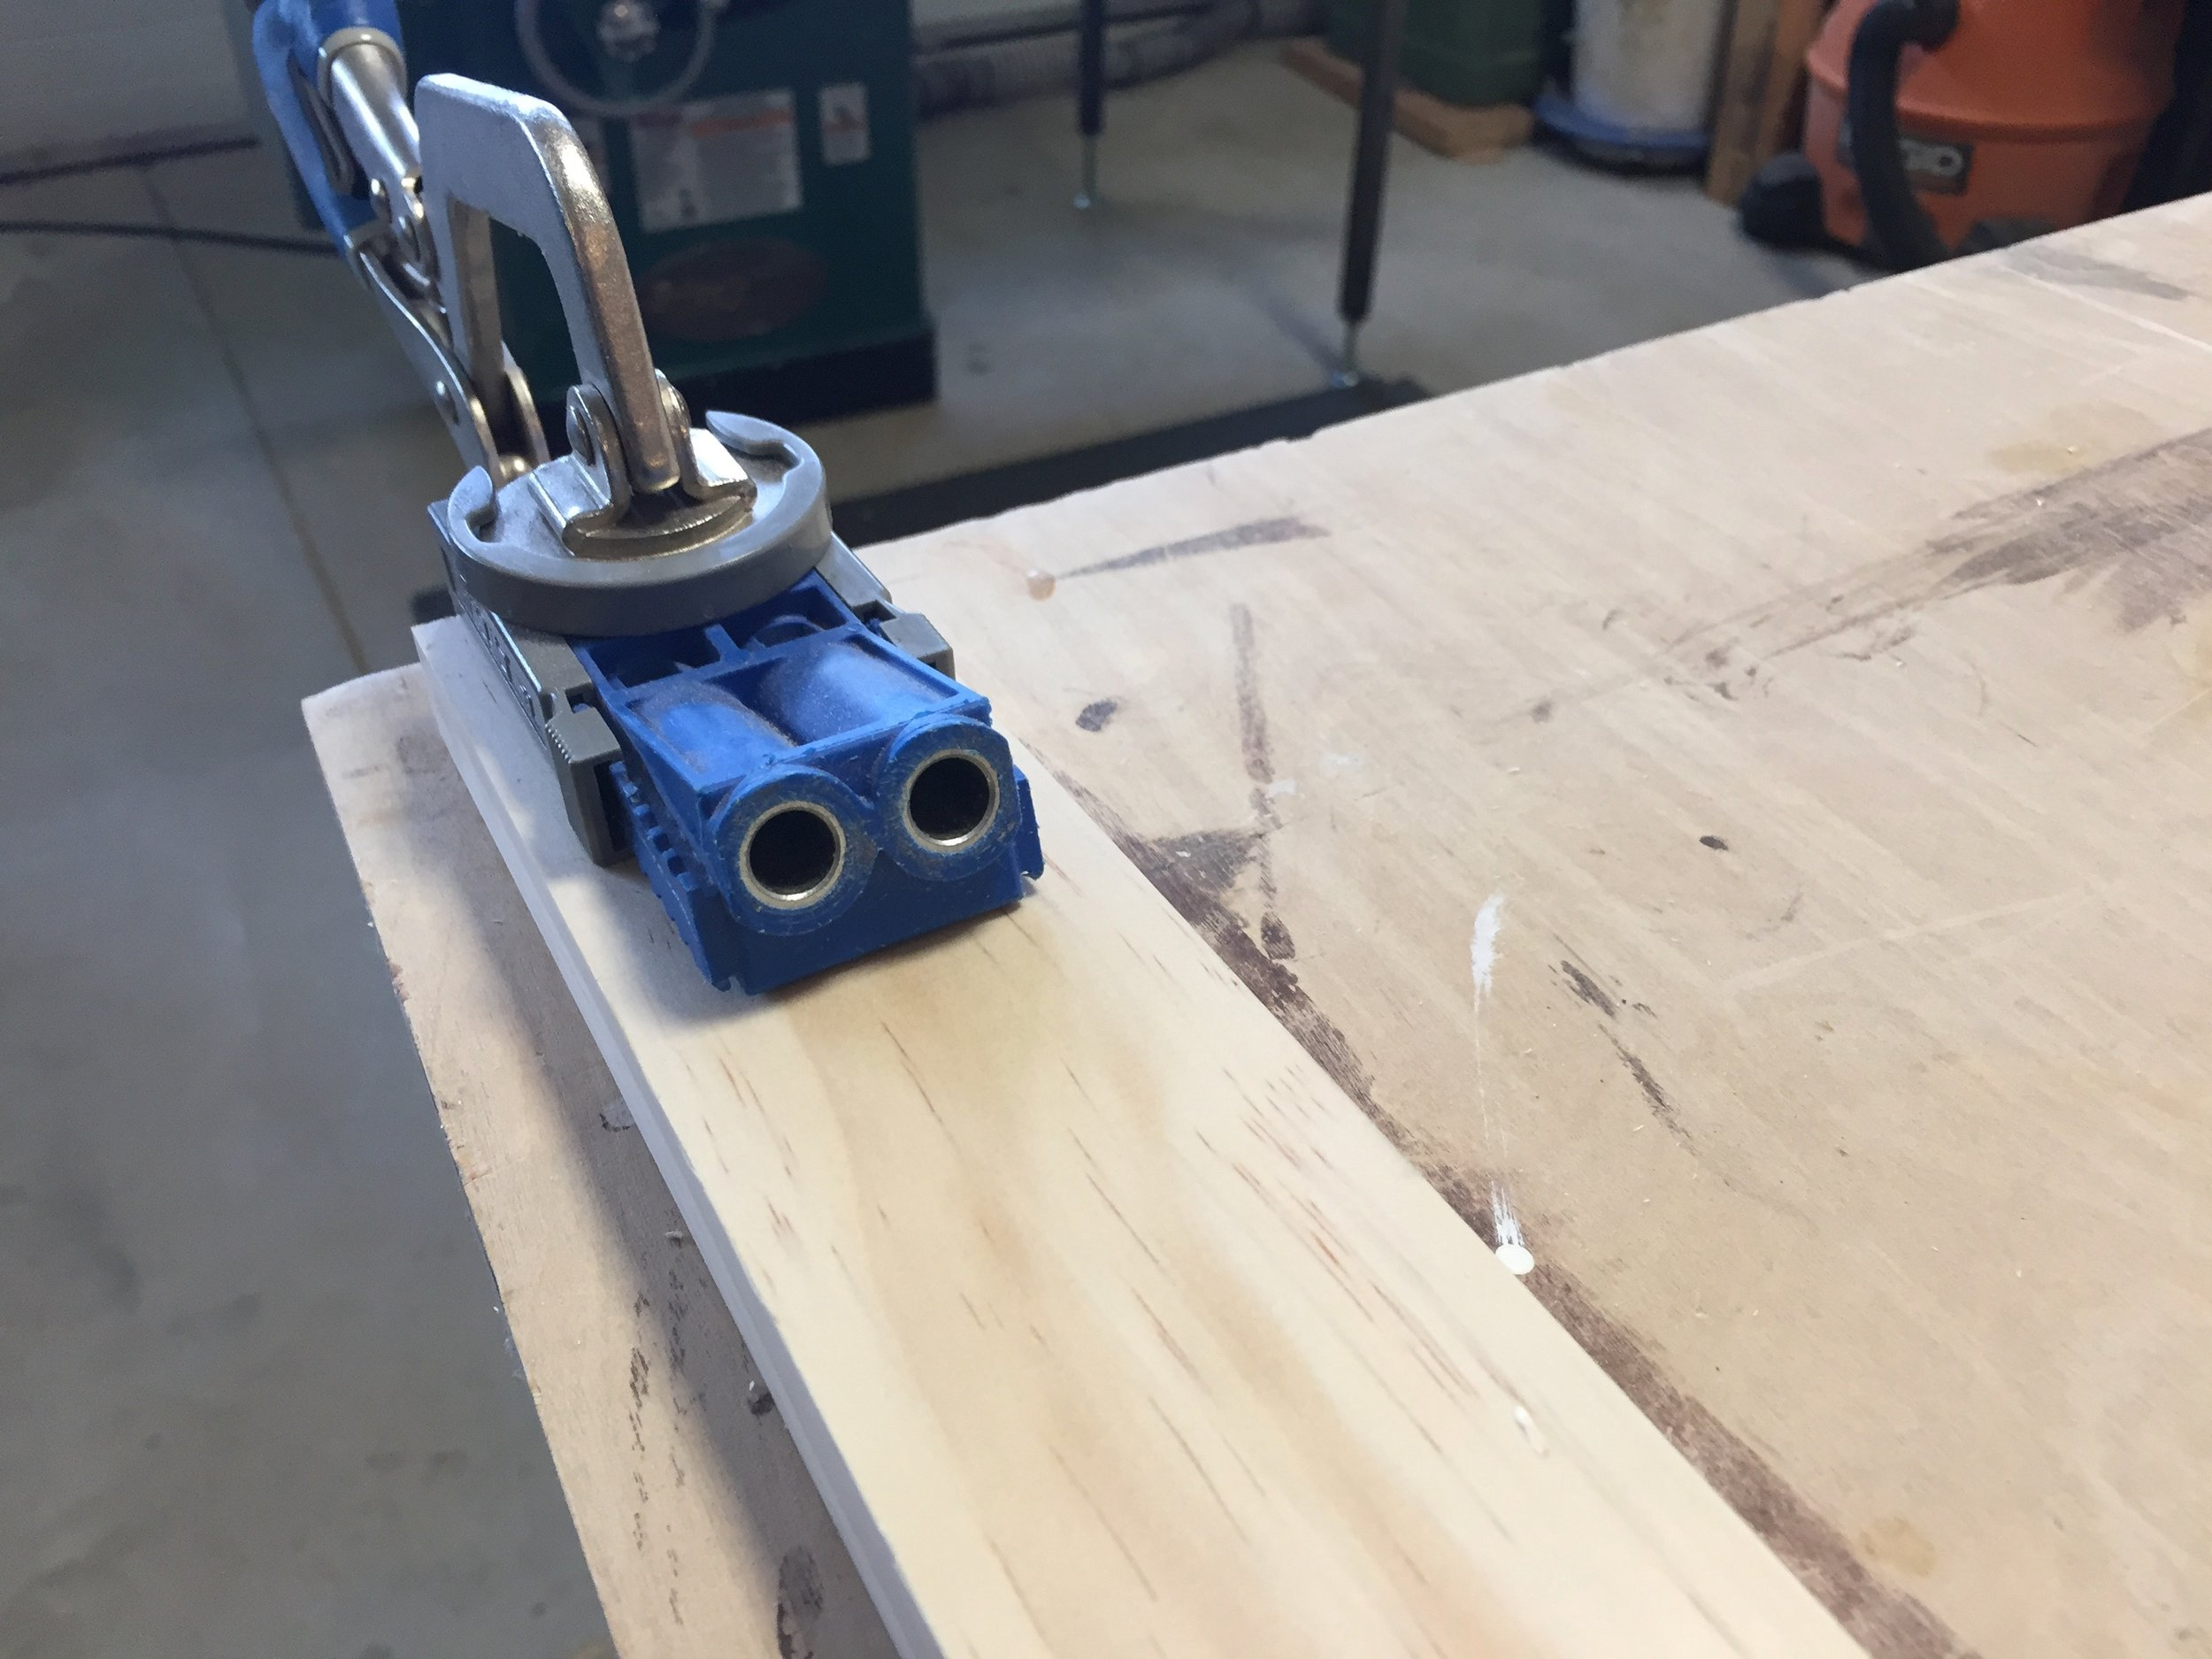 Setting up the Kreg Jig R3 to drill the skirts pocket holes